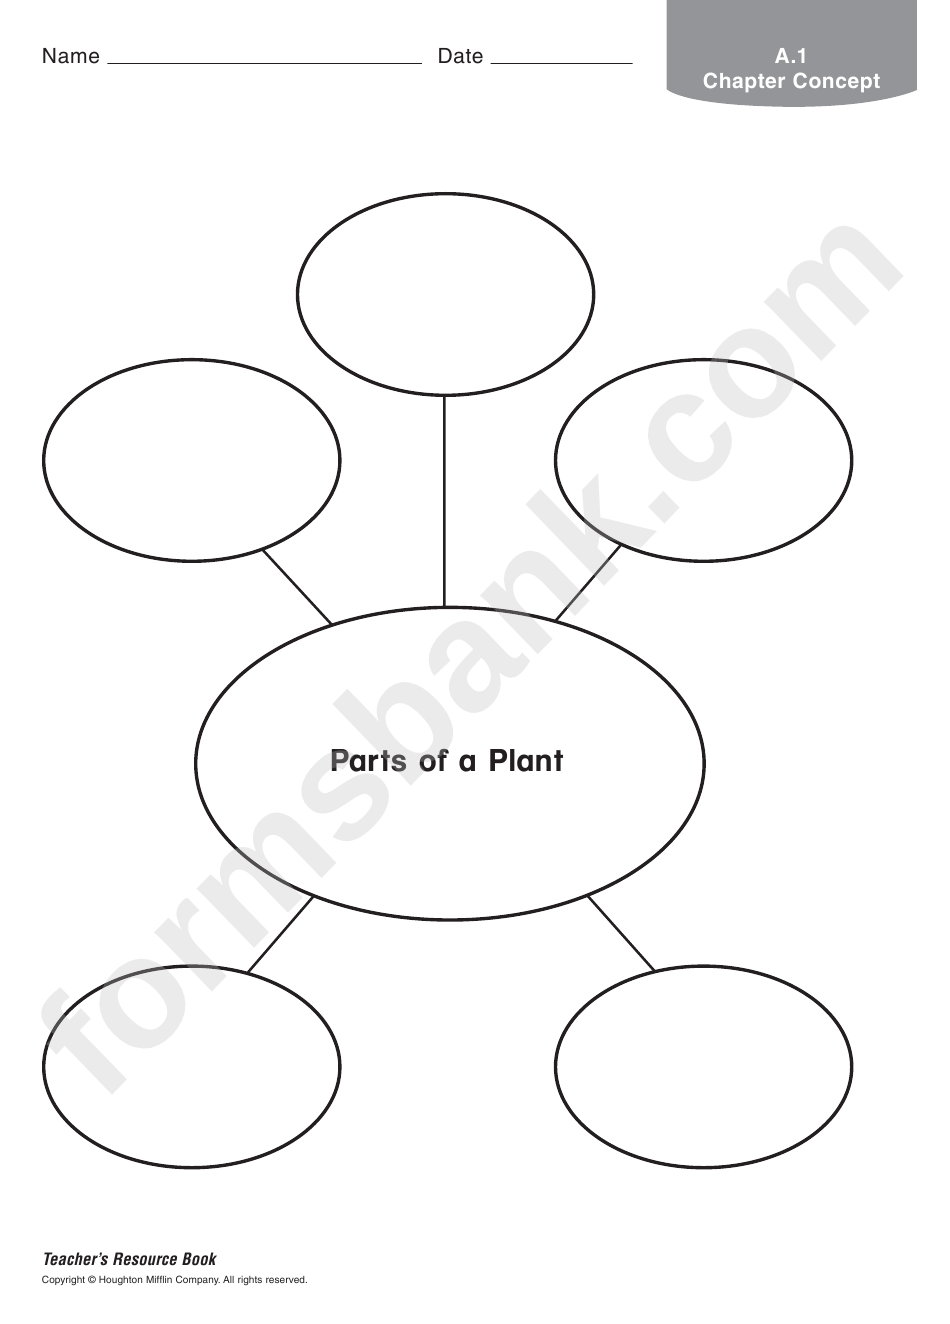 Parts Of A Plant Biology Worksheet printable pdf download